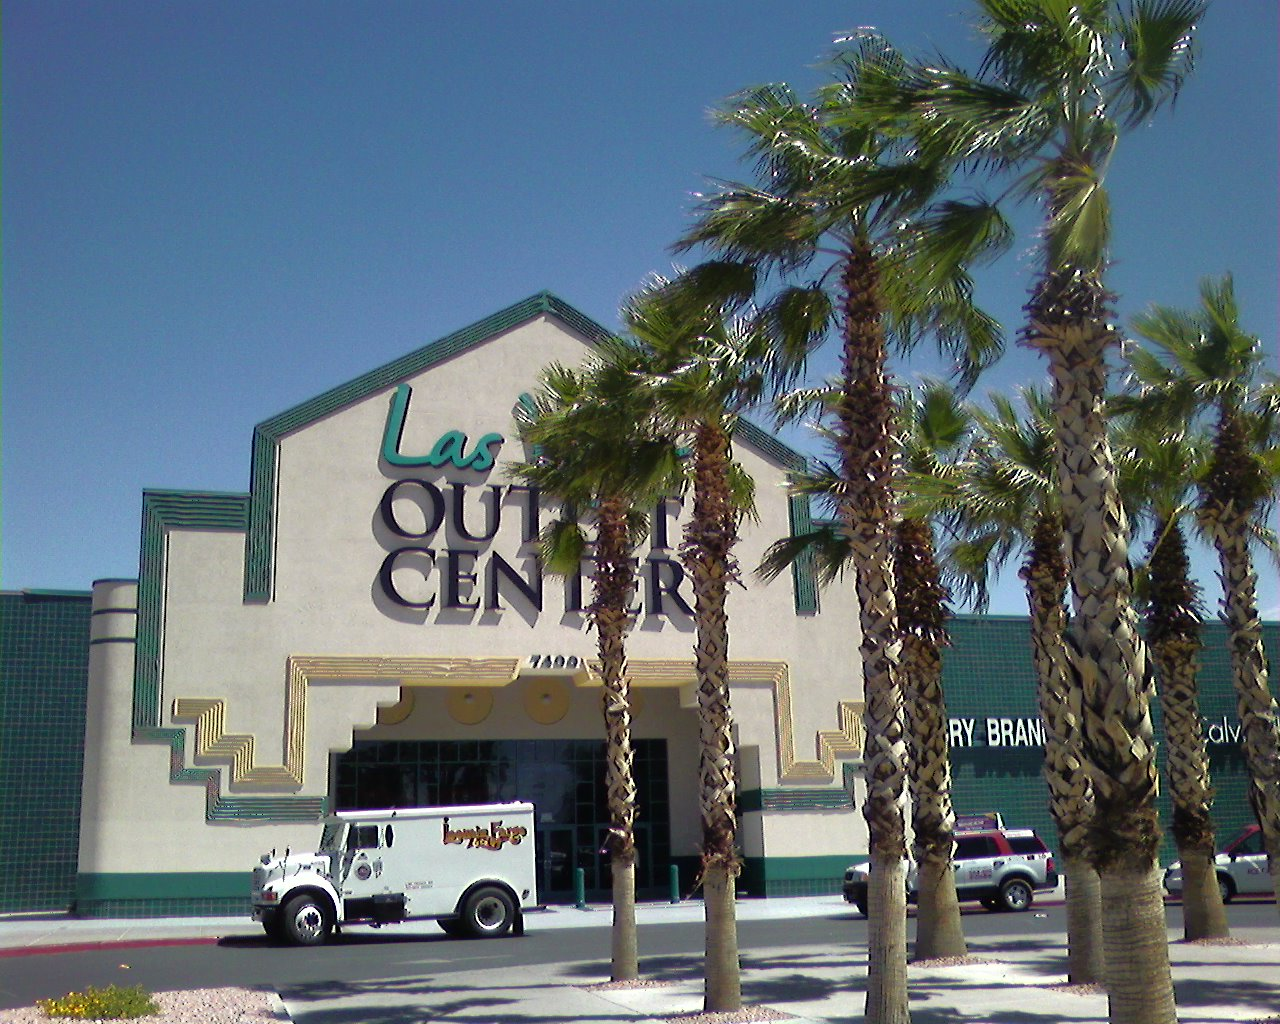 Las Vegas Outlet Center in Las Vegas, NV